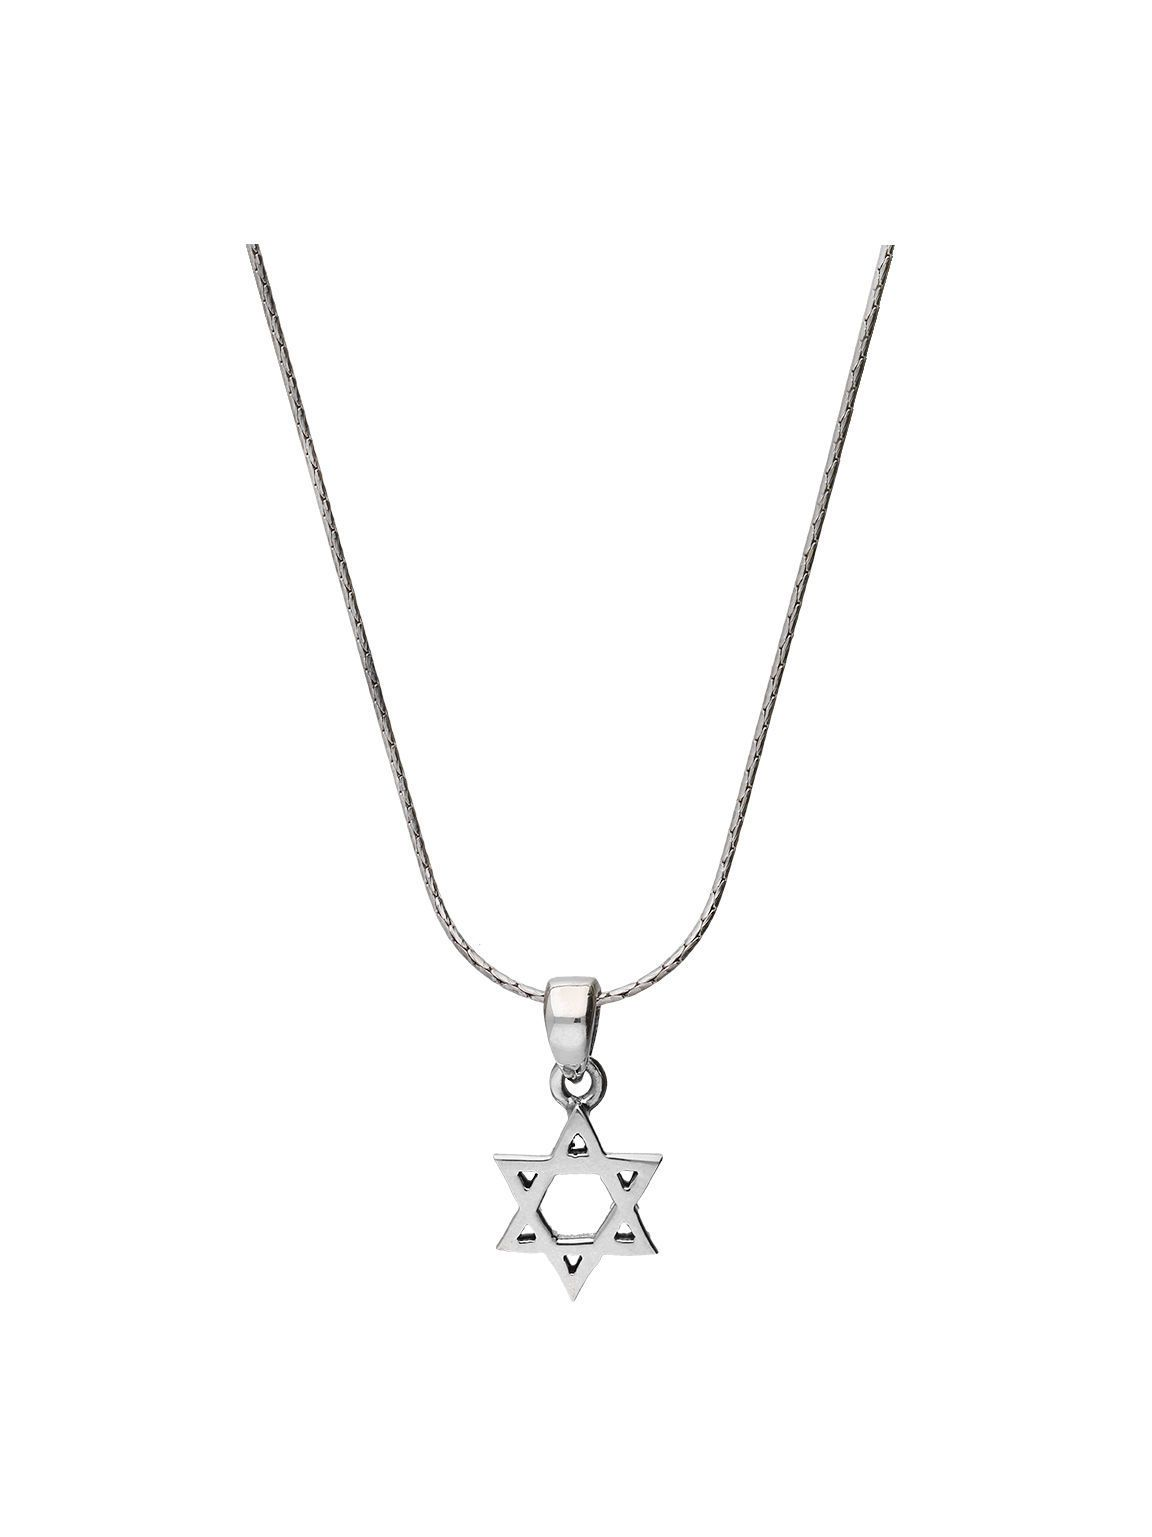 Star sterling silver cut out magen david pendant judaica chain handcrafted 925 sterling silver star of david pendant necklace a beautiful creation featuring a fine aloadofball Image collections